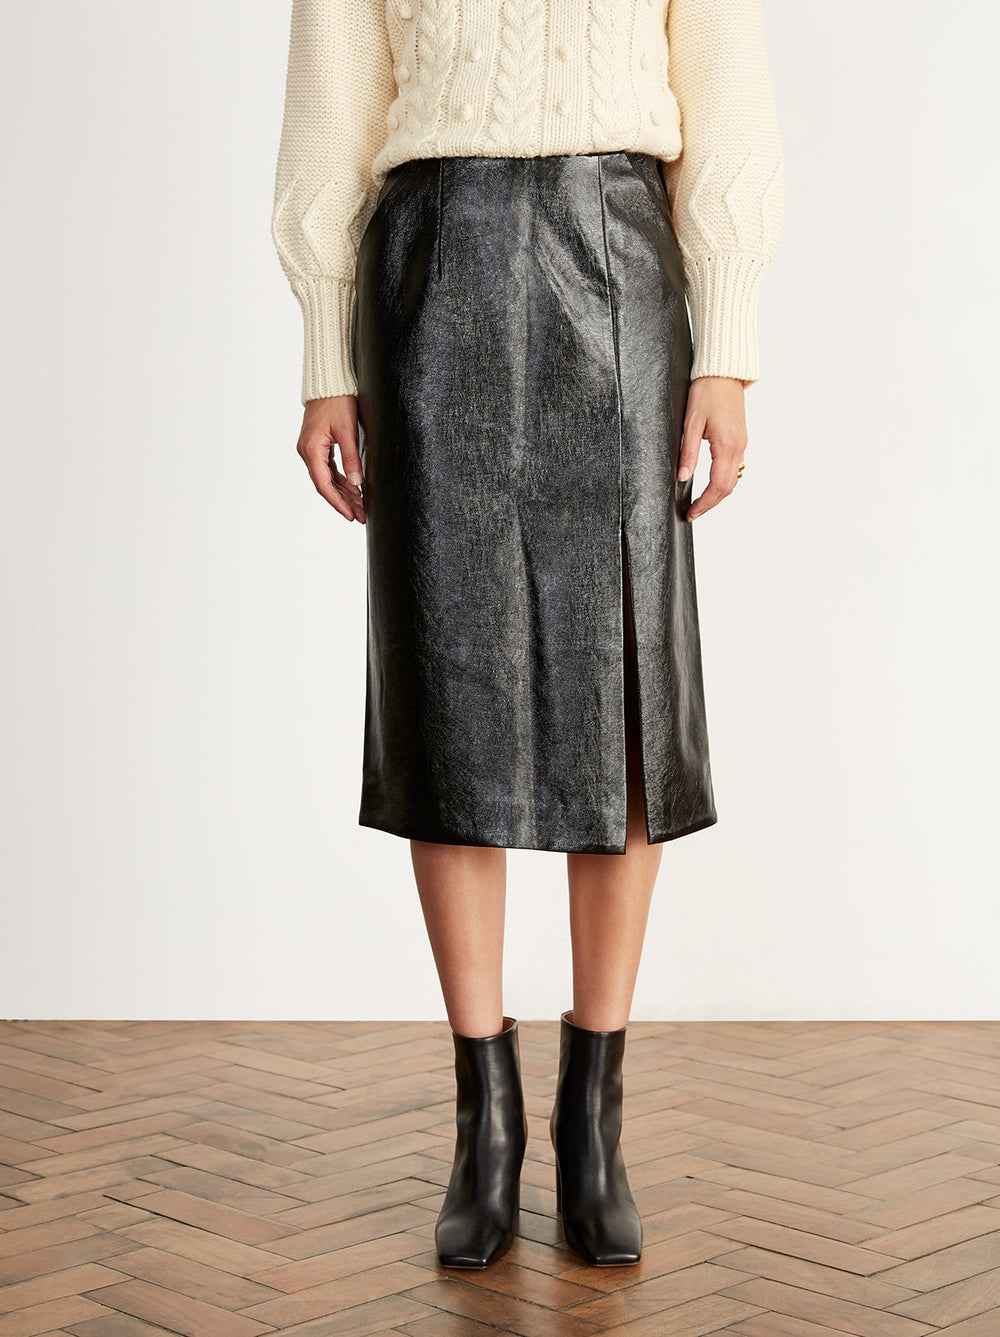 Carine Black Vinyl Skirt by KITRI Studio